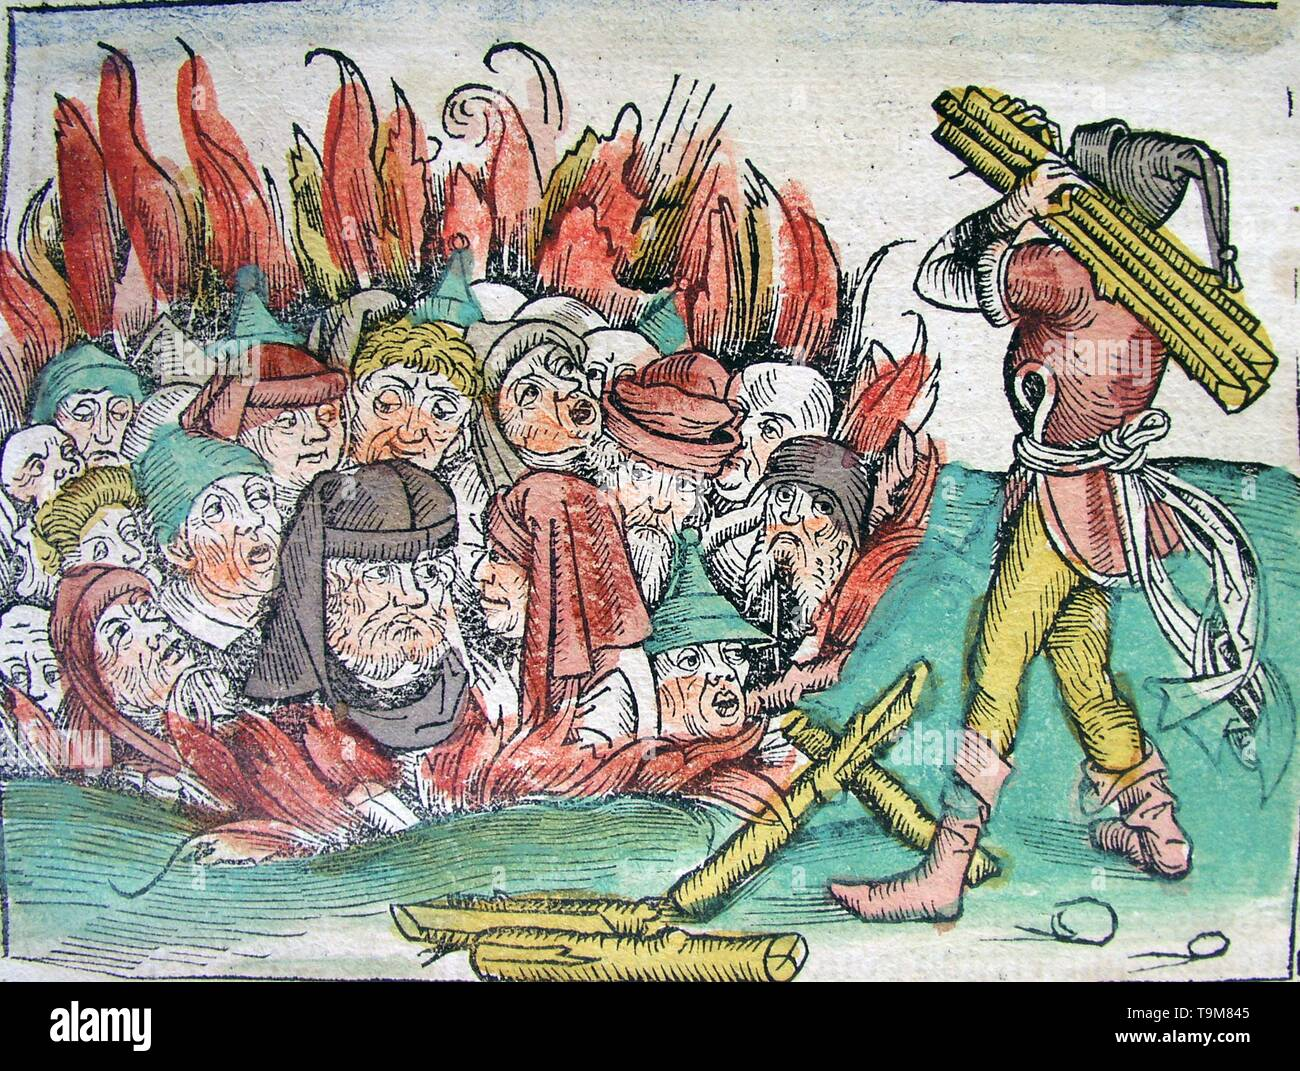 Burning of the Jews at Deggendorf in 1338 (from the Schedel's Chronicle of the World). Museum: PRIVATE COLLECTION. Author: MICHAEL WOLGEMUT. - Stock Image